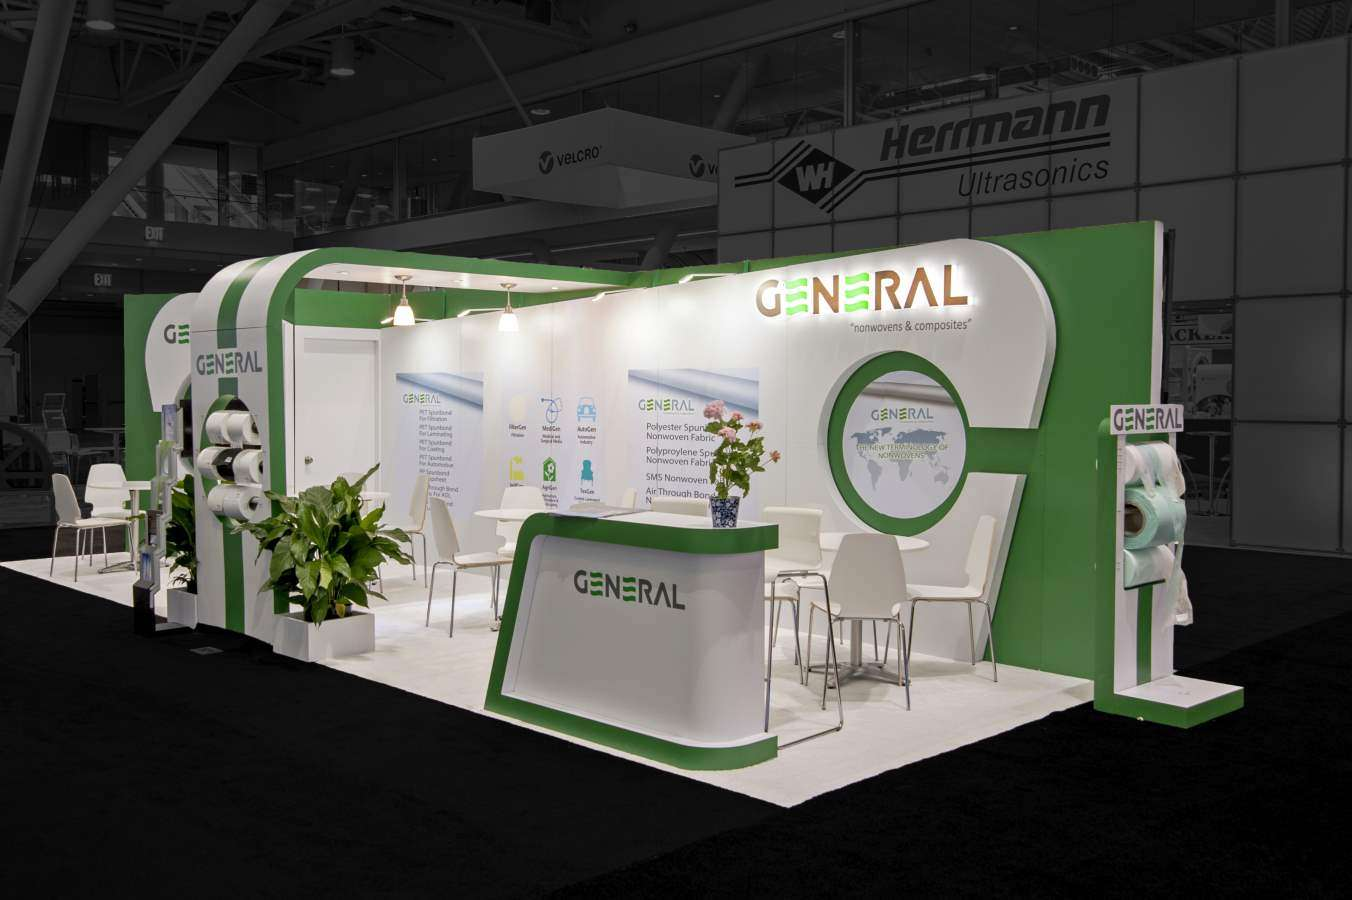 Exhibition Stand Display Ideas : Trade show displays solutions event exhibits tradeshow